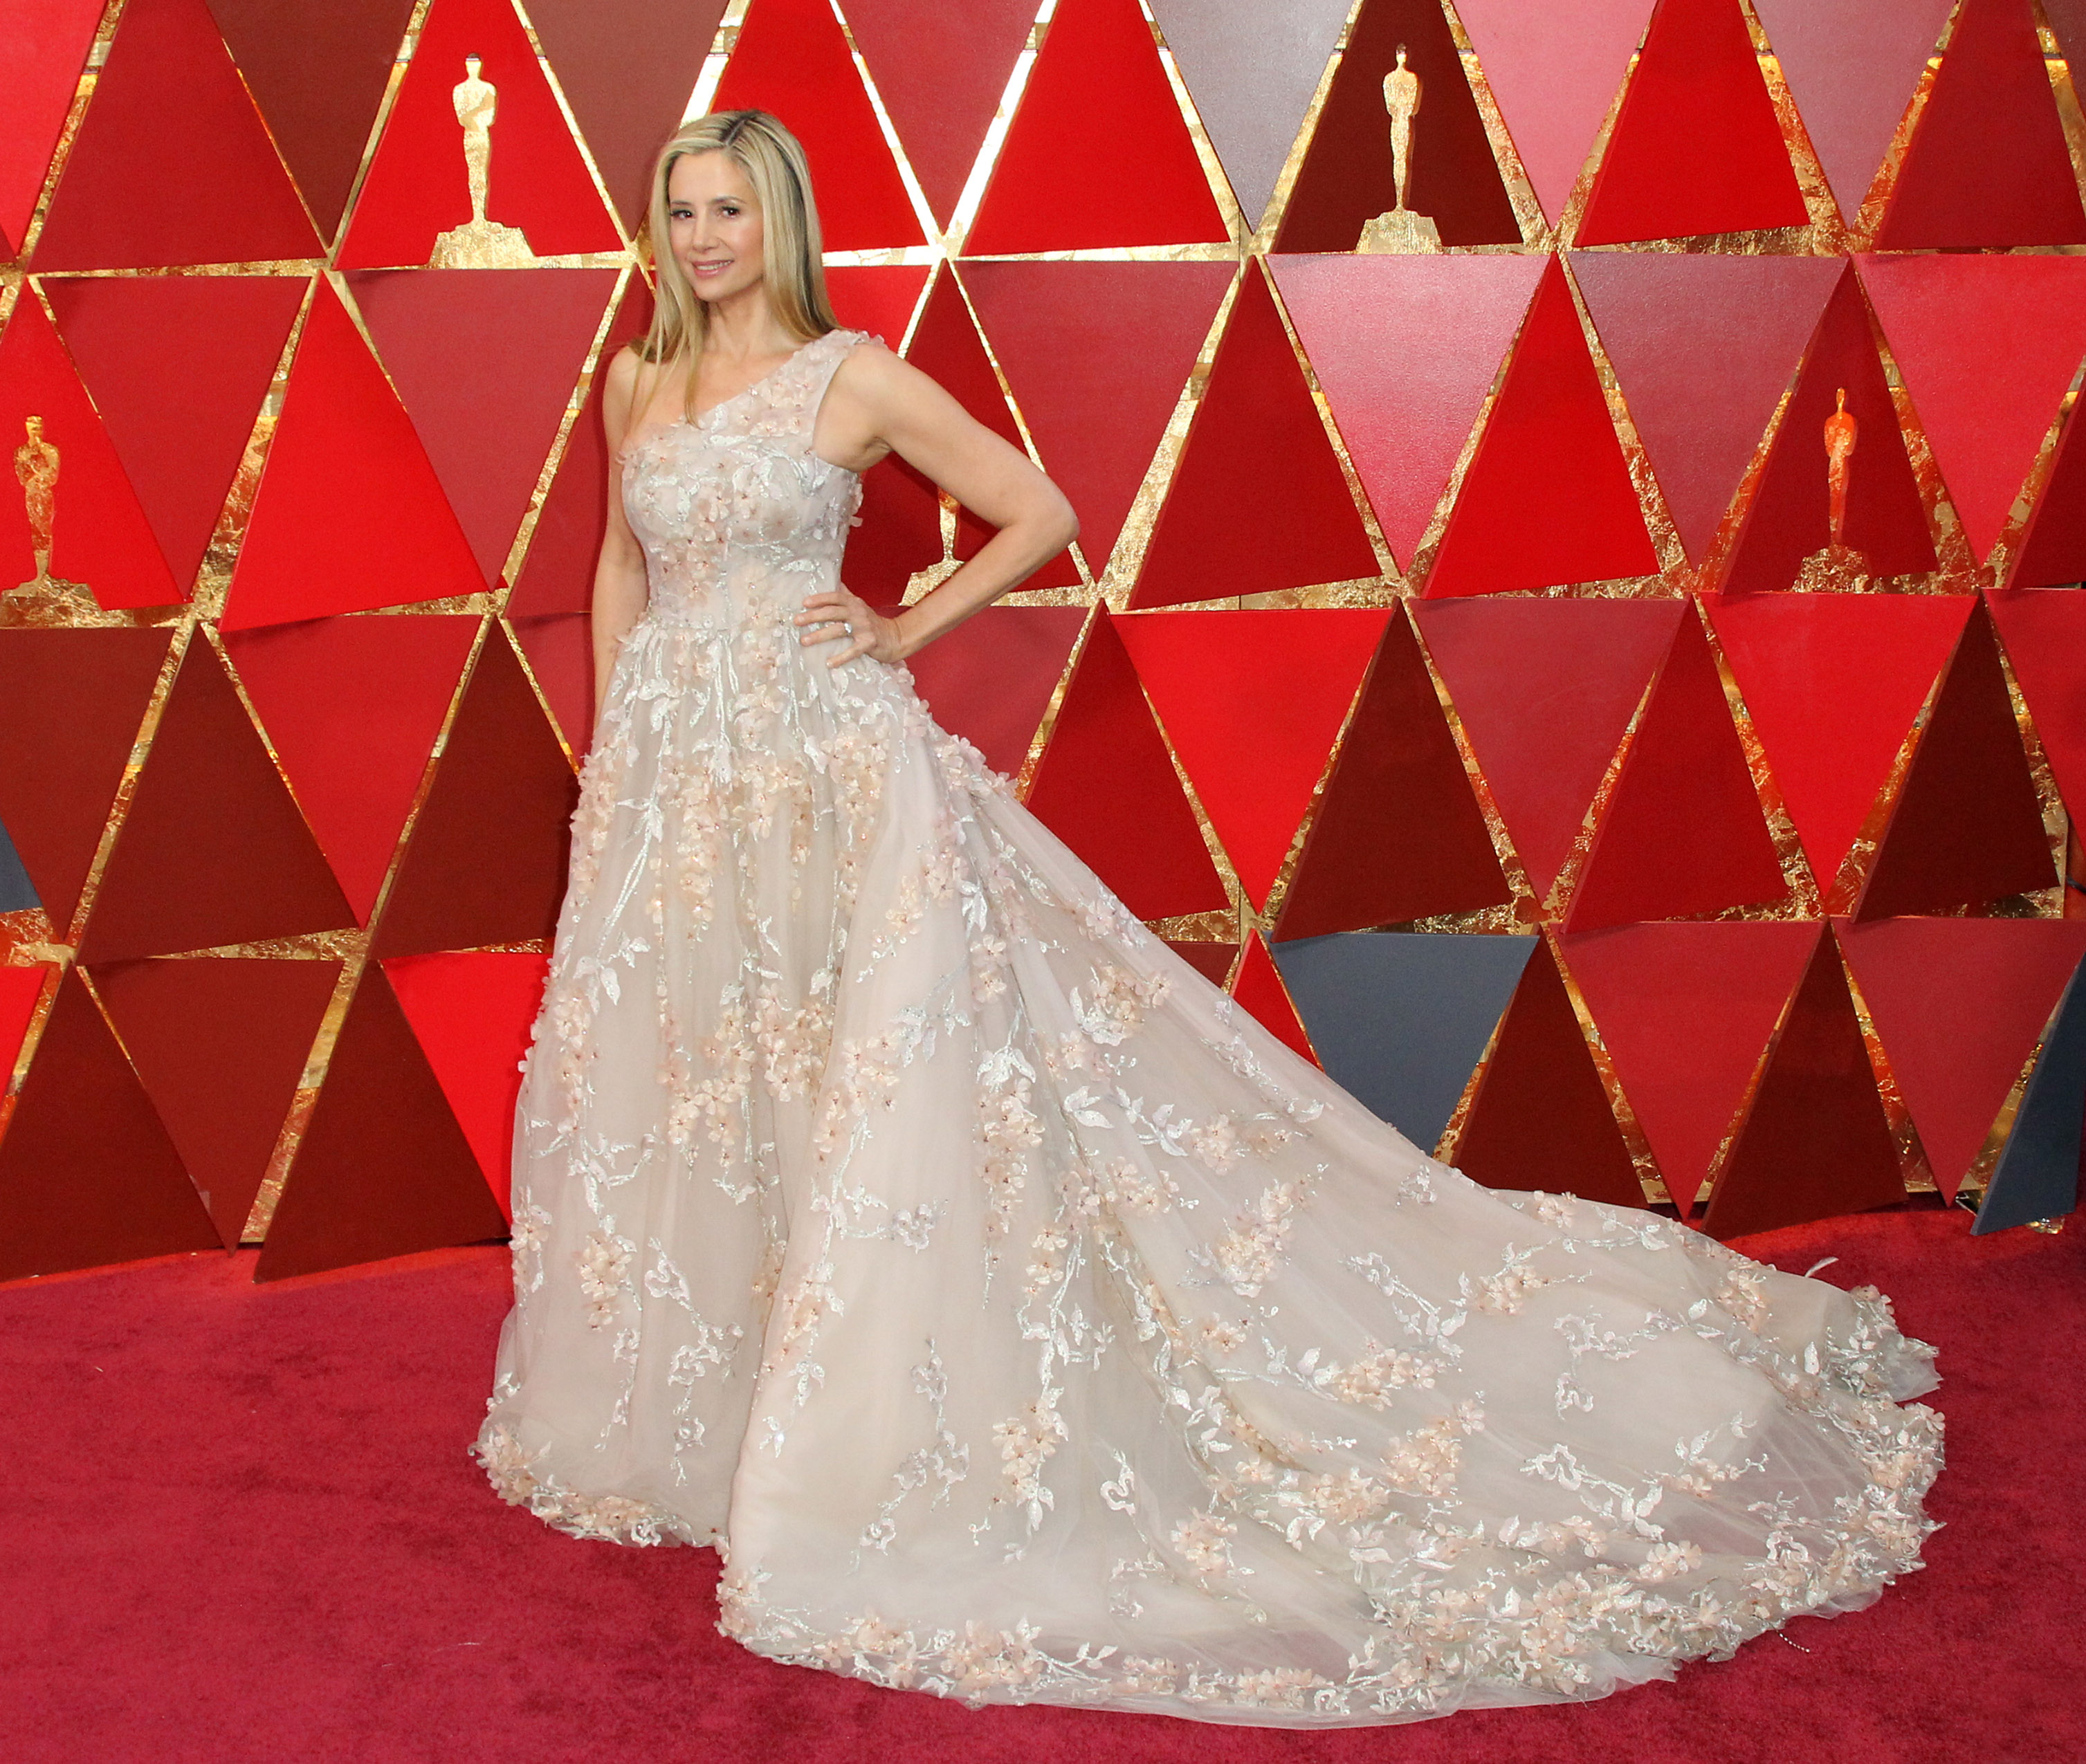 Mira Sorvinoarrives at the 90th Annual Academy Awards (Oscars) held at the Dolby Theater in Hollywood, California. (Image: Adriana M. Barraza/WENN.com)<p></p>